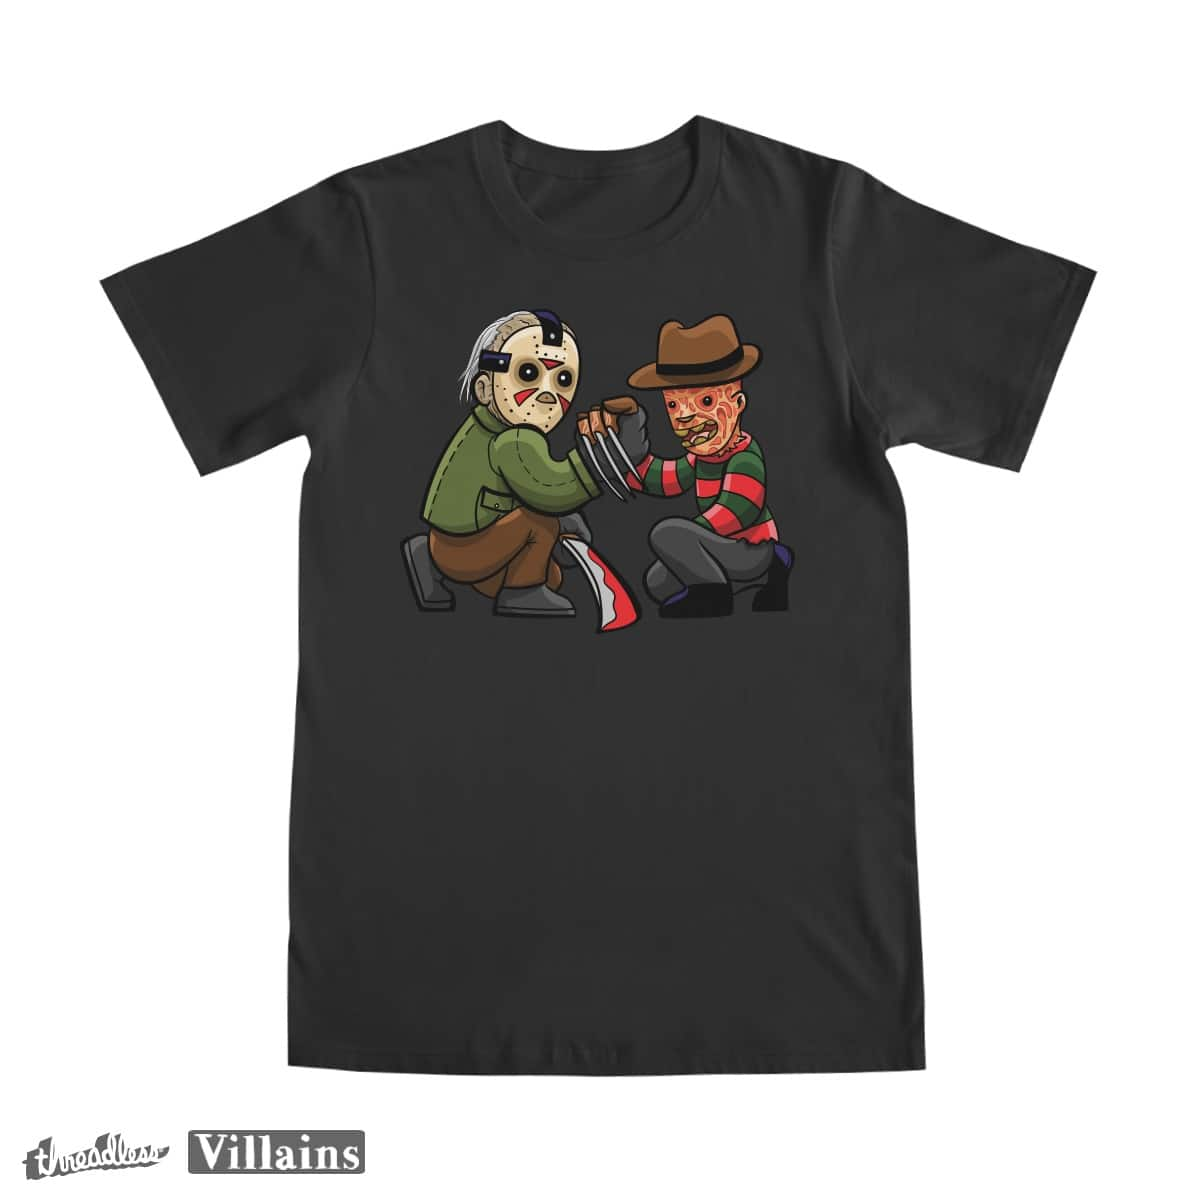 Unholy Alliance by peabe5 on Threadless